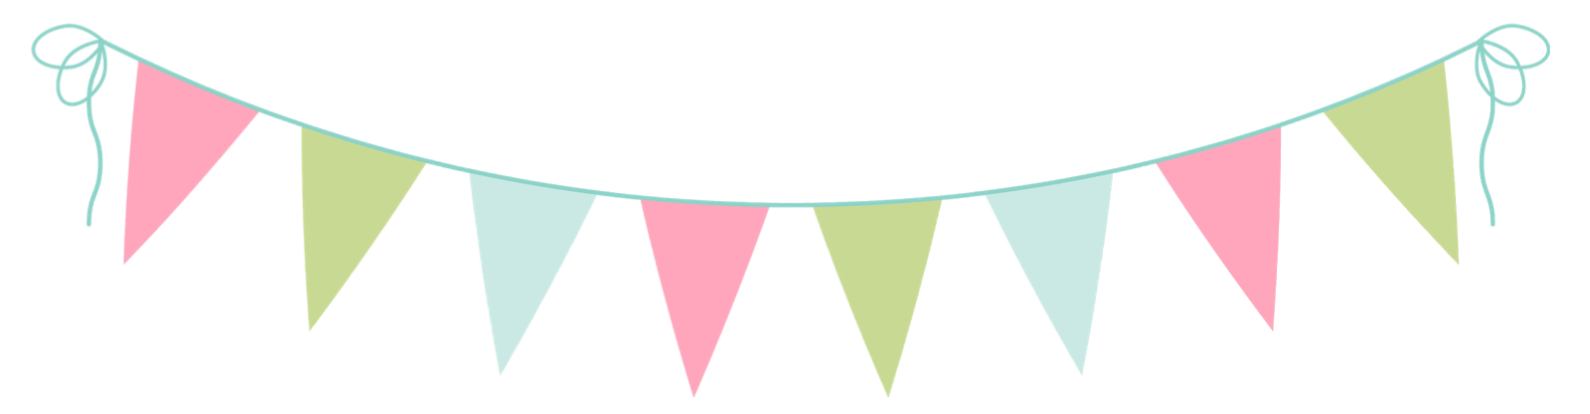 Png pennant banner. Collection of clipart